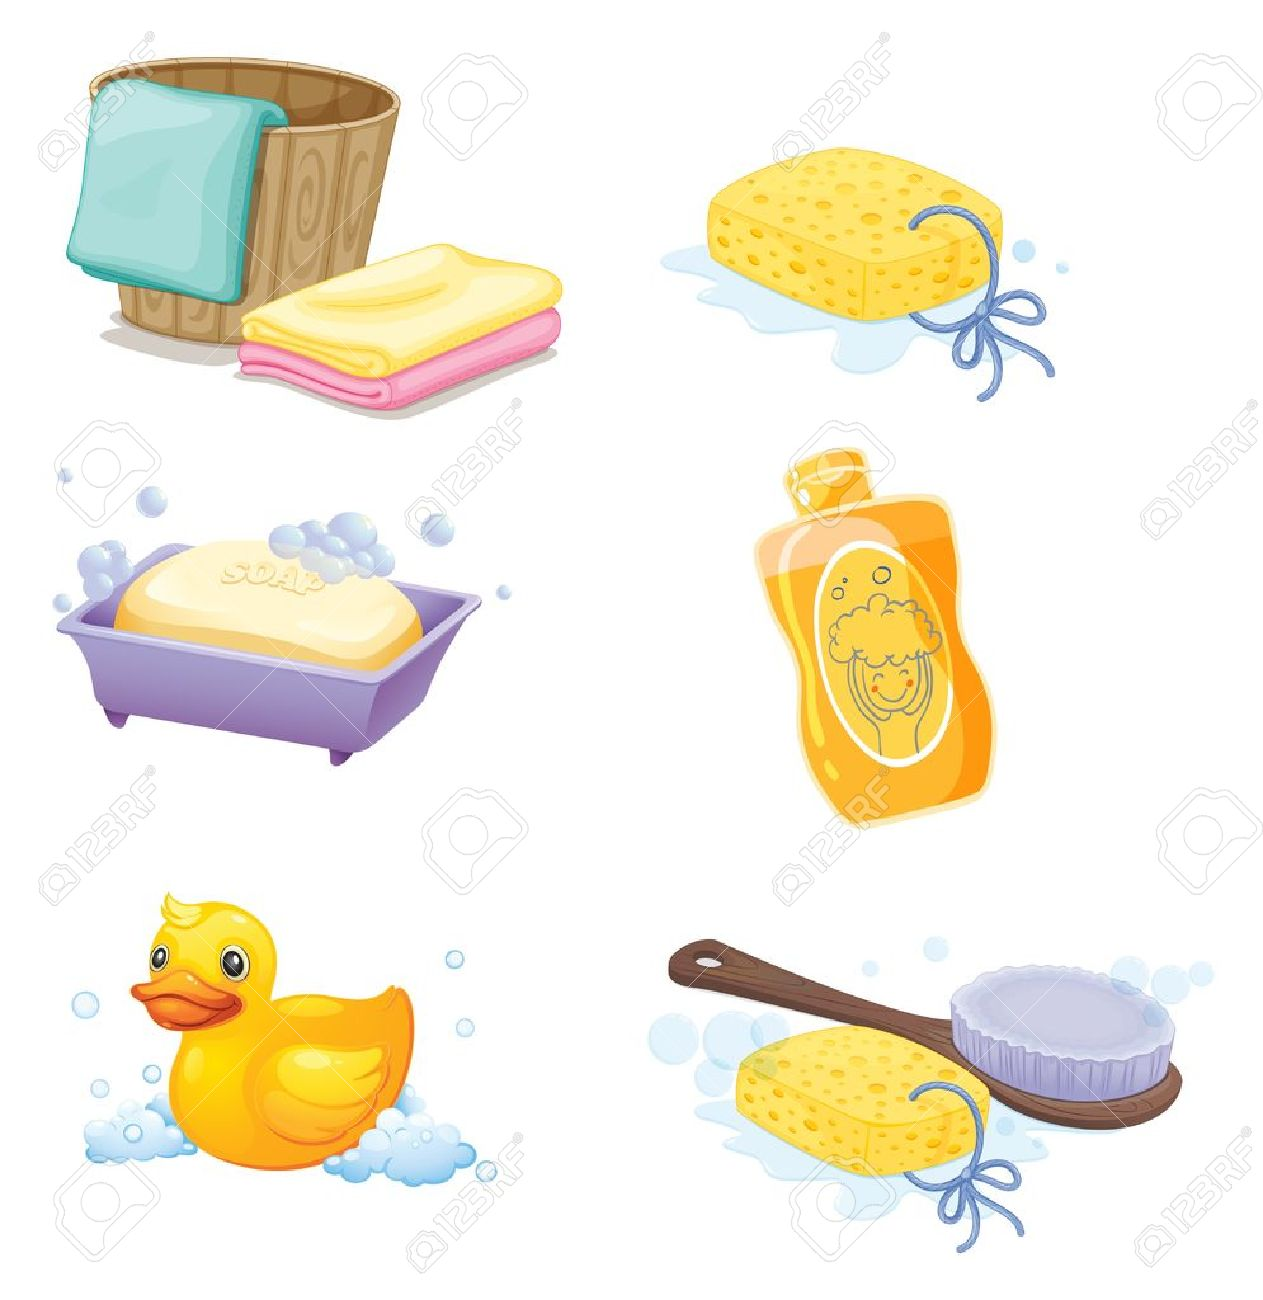 of the bathroom accessories on a white background stock vector